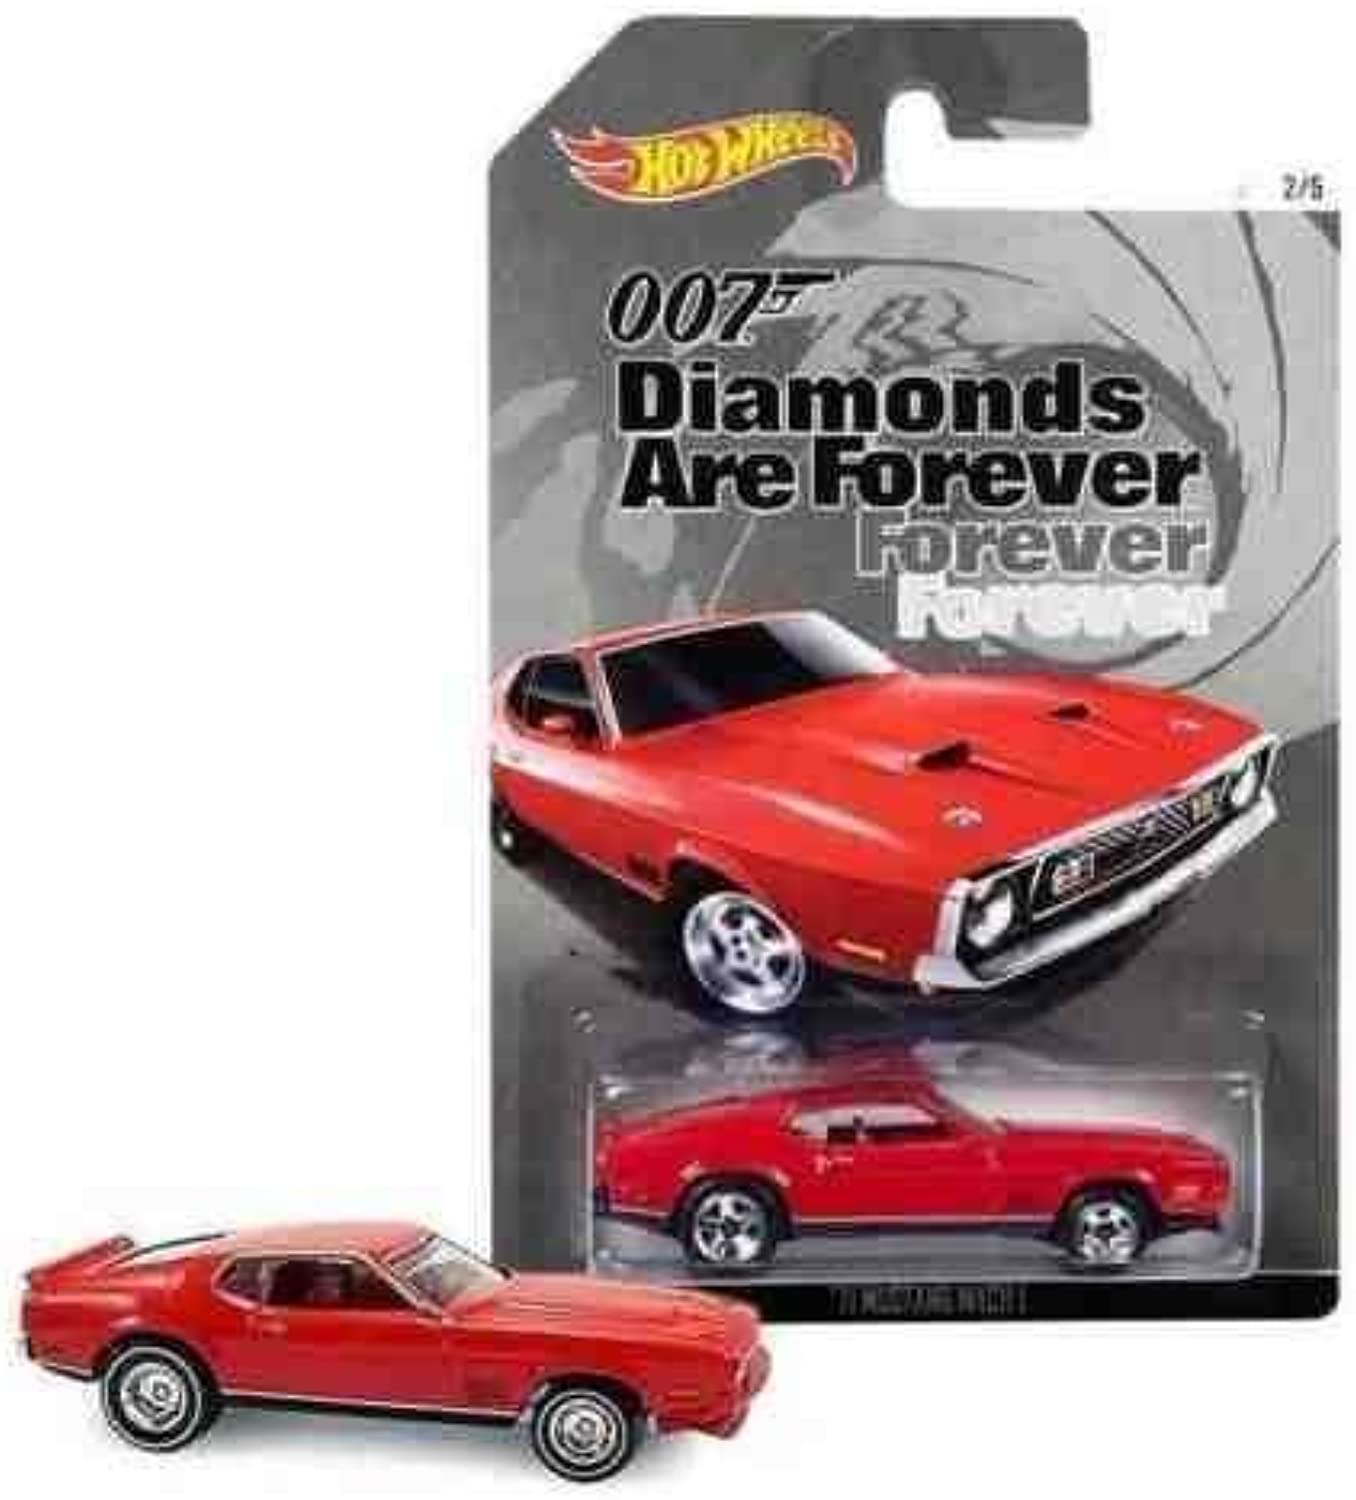 Hot Wheels 007 James Bond Diamonds Are Forever 1971 Mustang Mach 1 Diecast Car by Hot Wheels